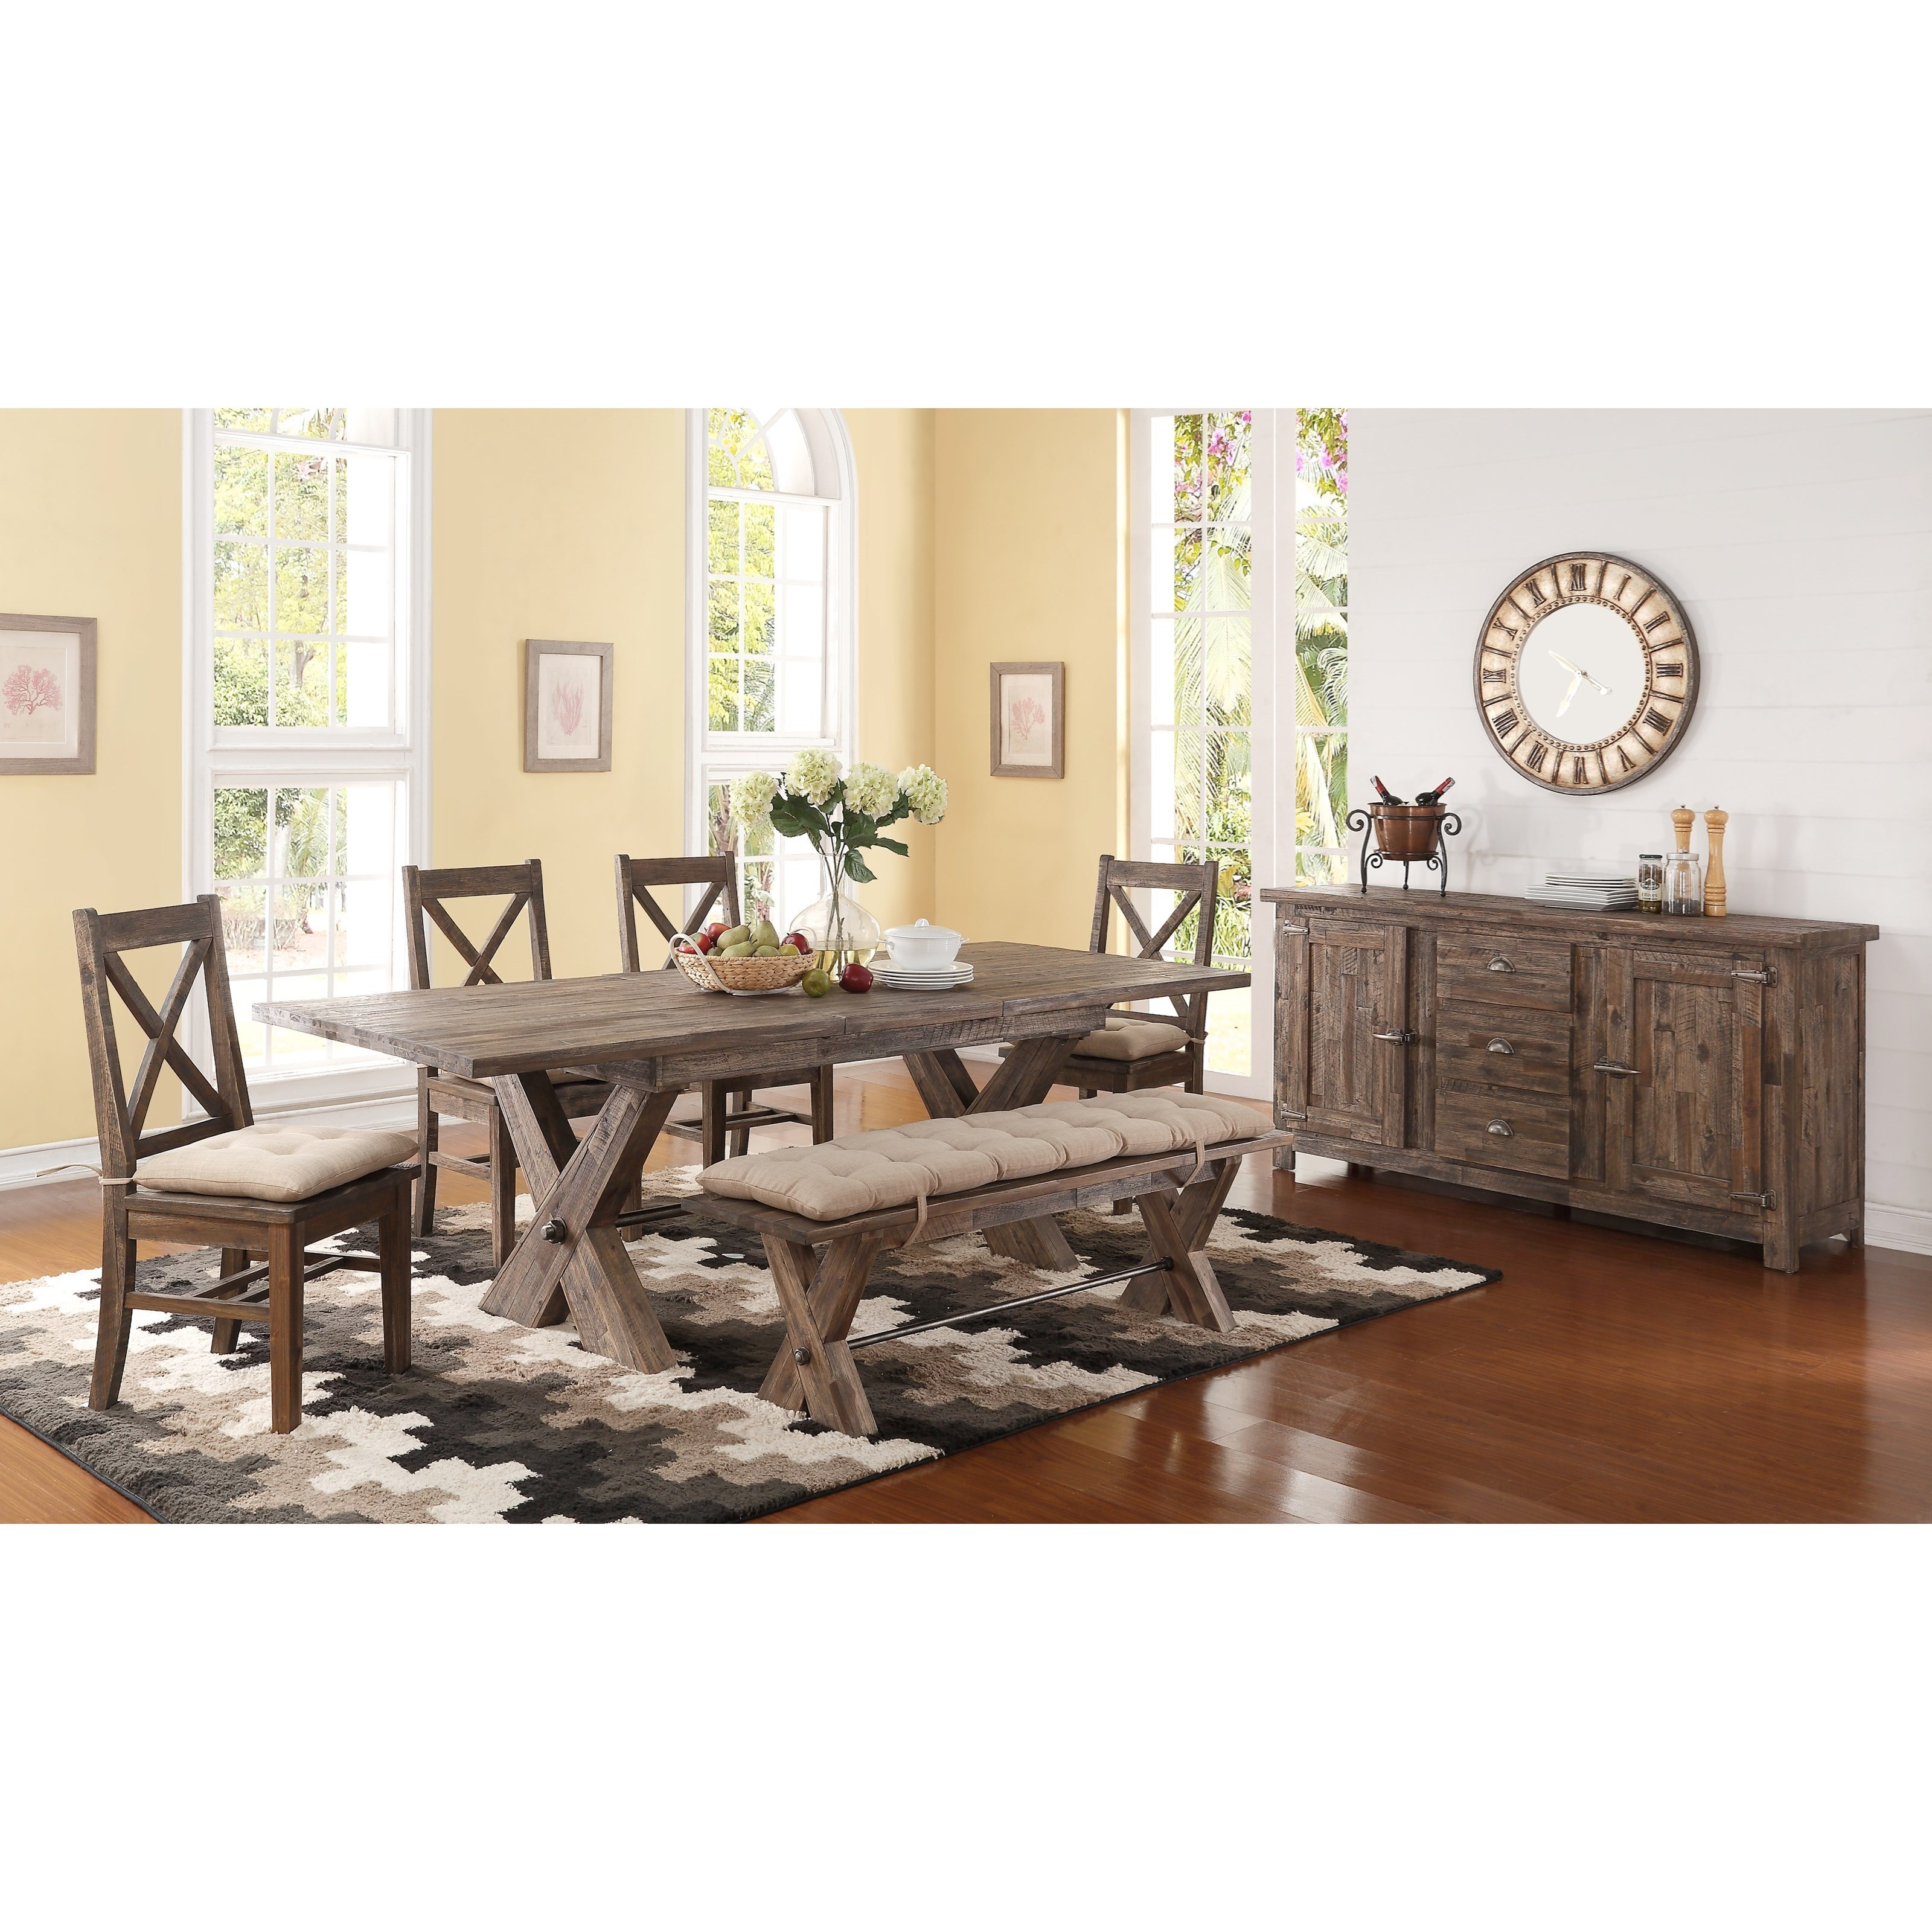 Superbe New Classic Tuscany Park Formal Dining Room Group